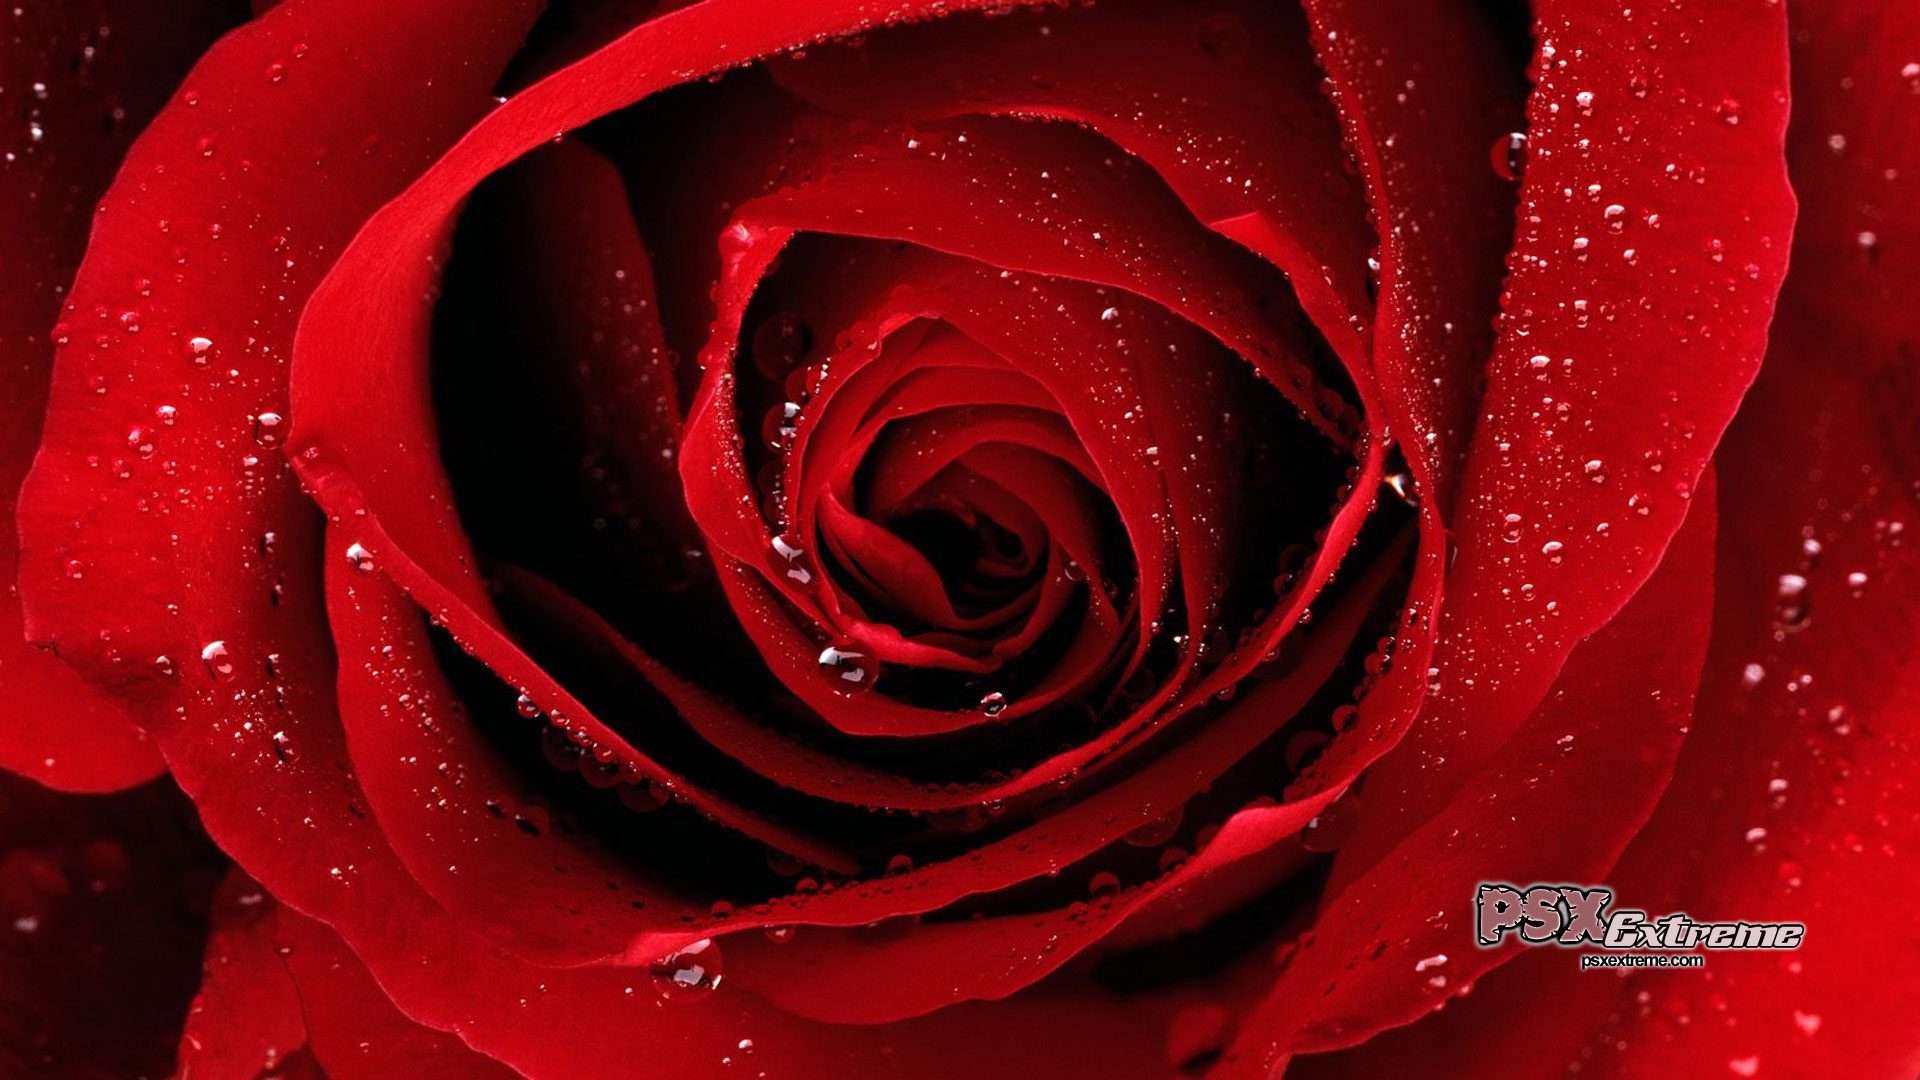 Couleurs Images Beautiful Red Rose Fond D Ecran Hd Fond D Ecran And